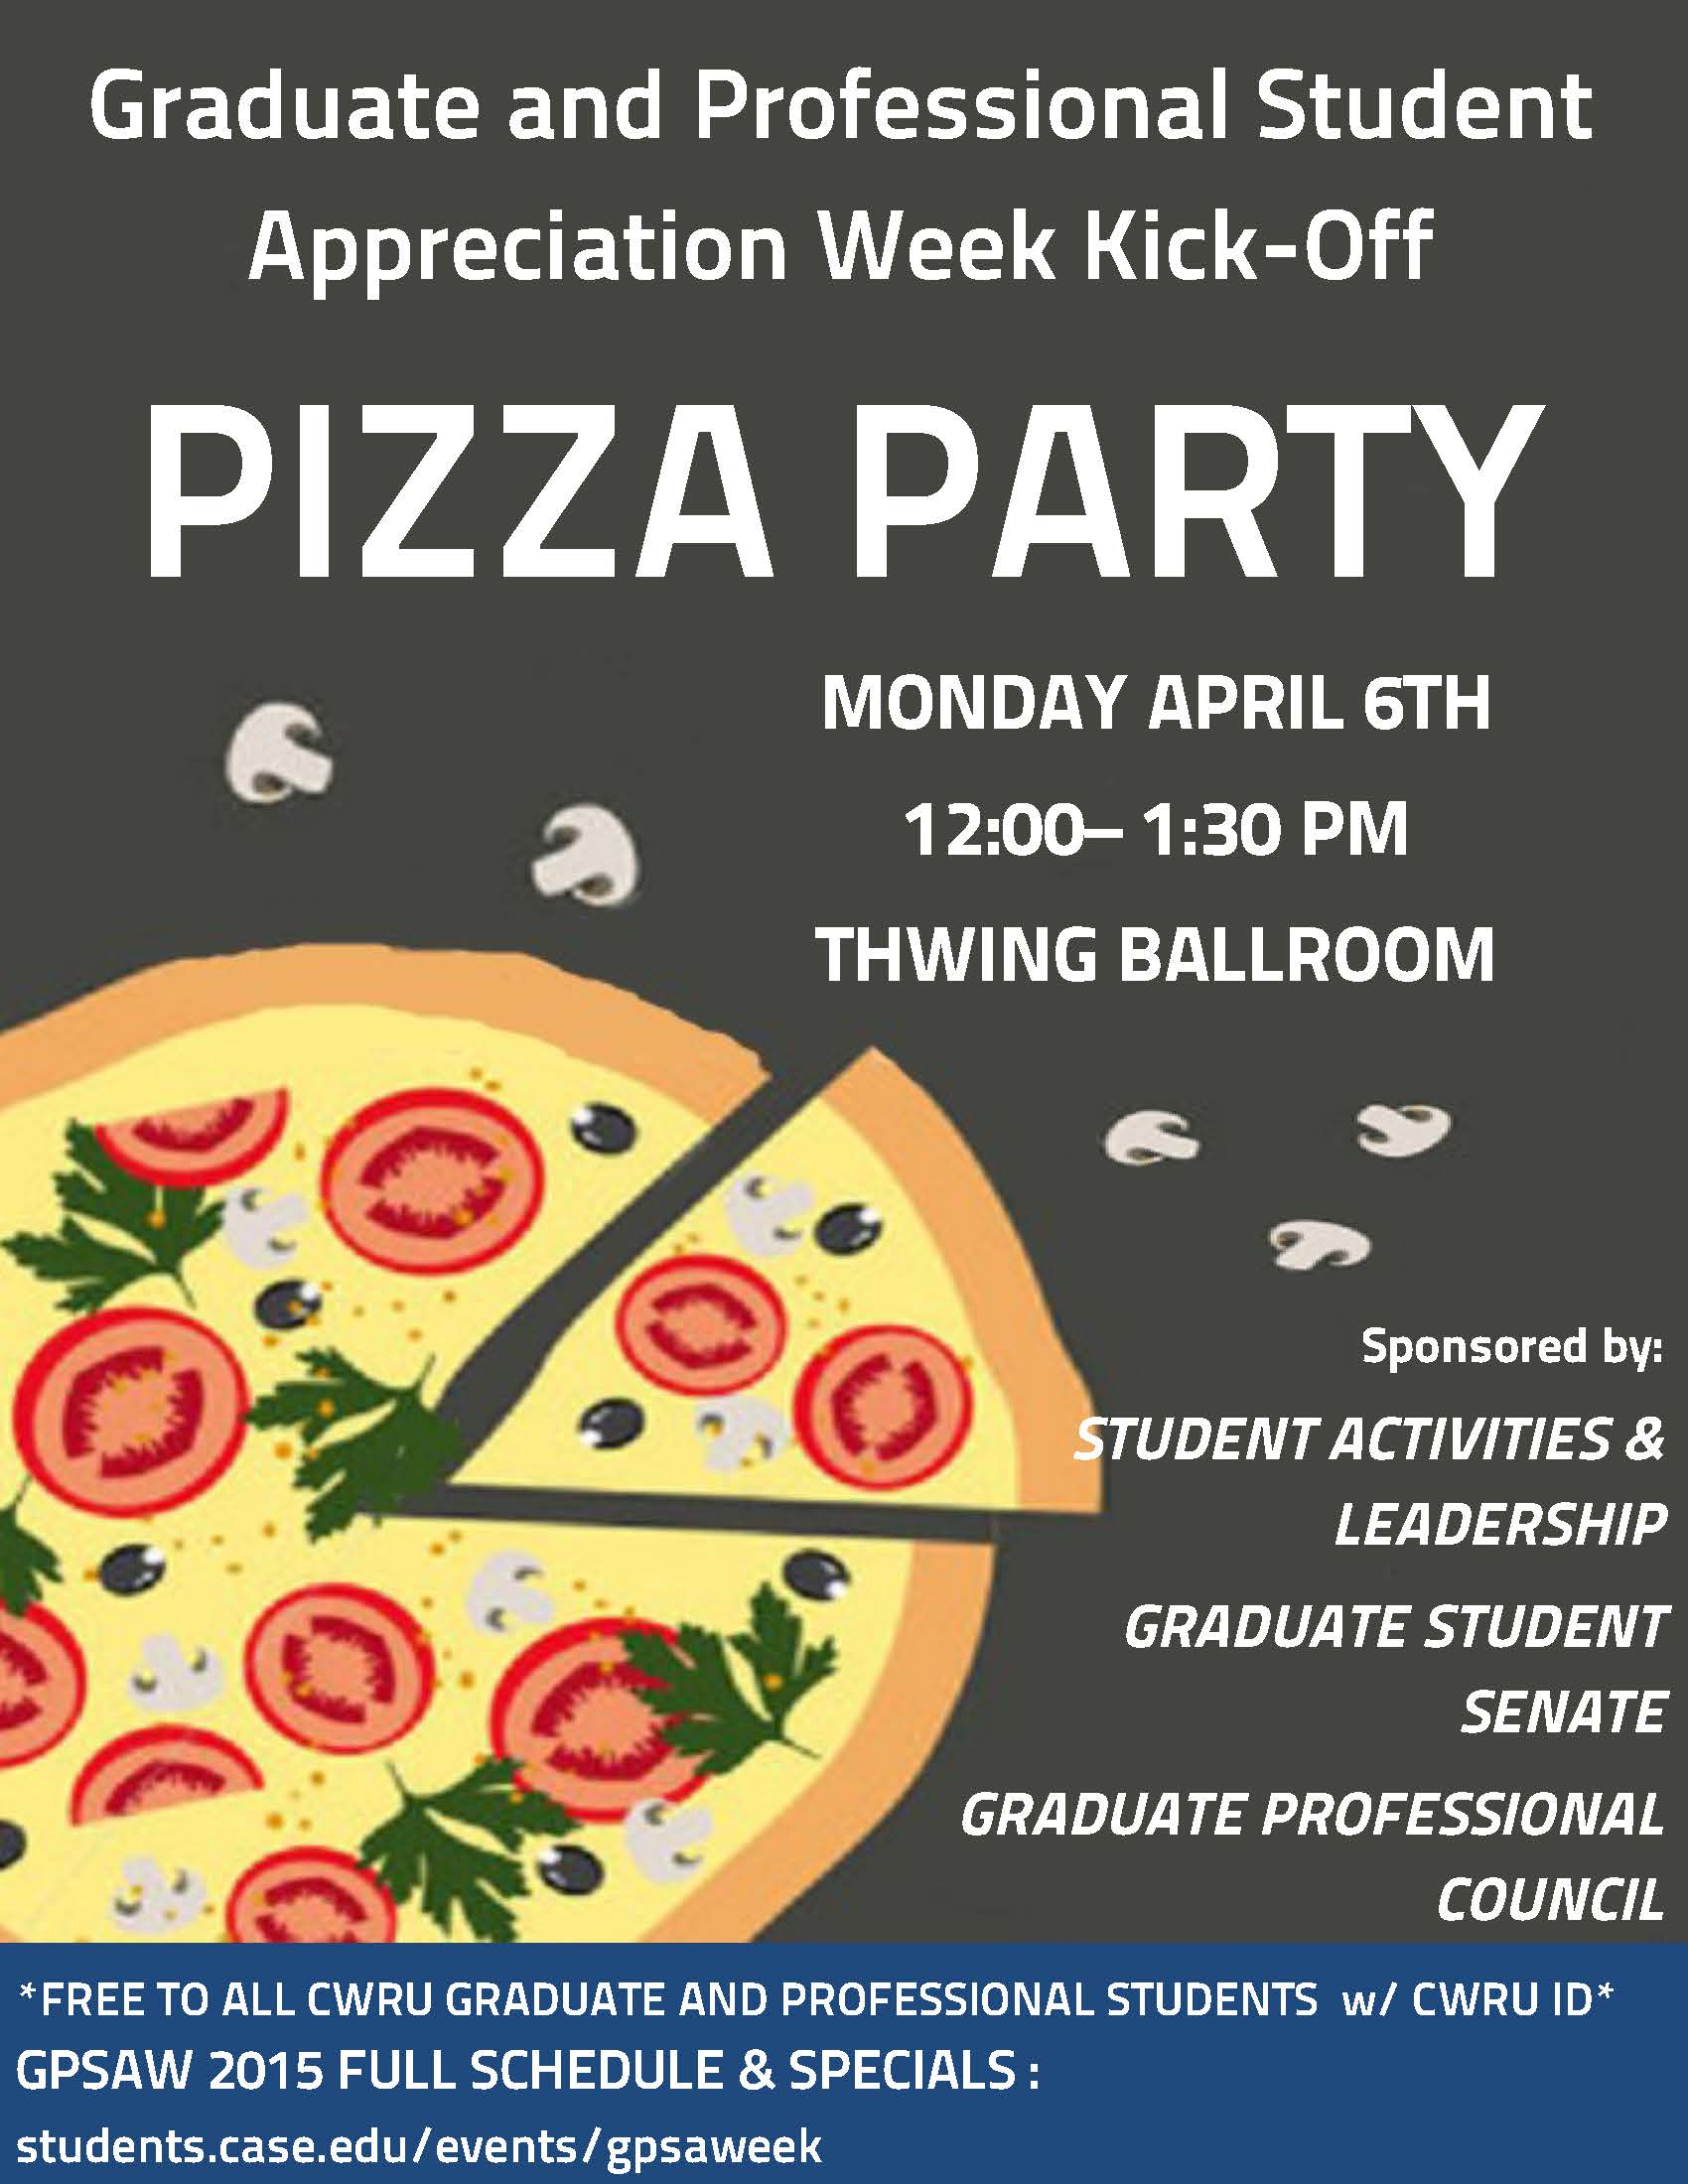 graduate and professional student appreciation week kicks off with